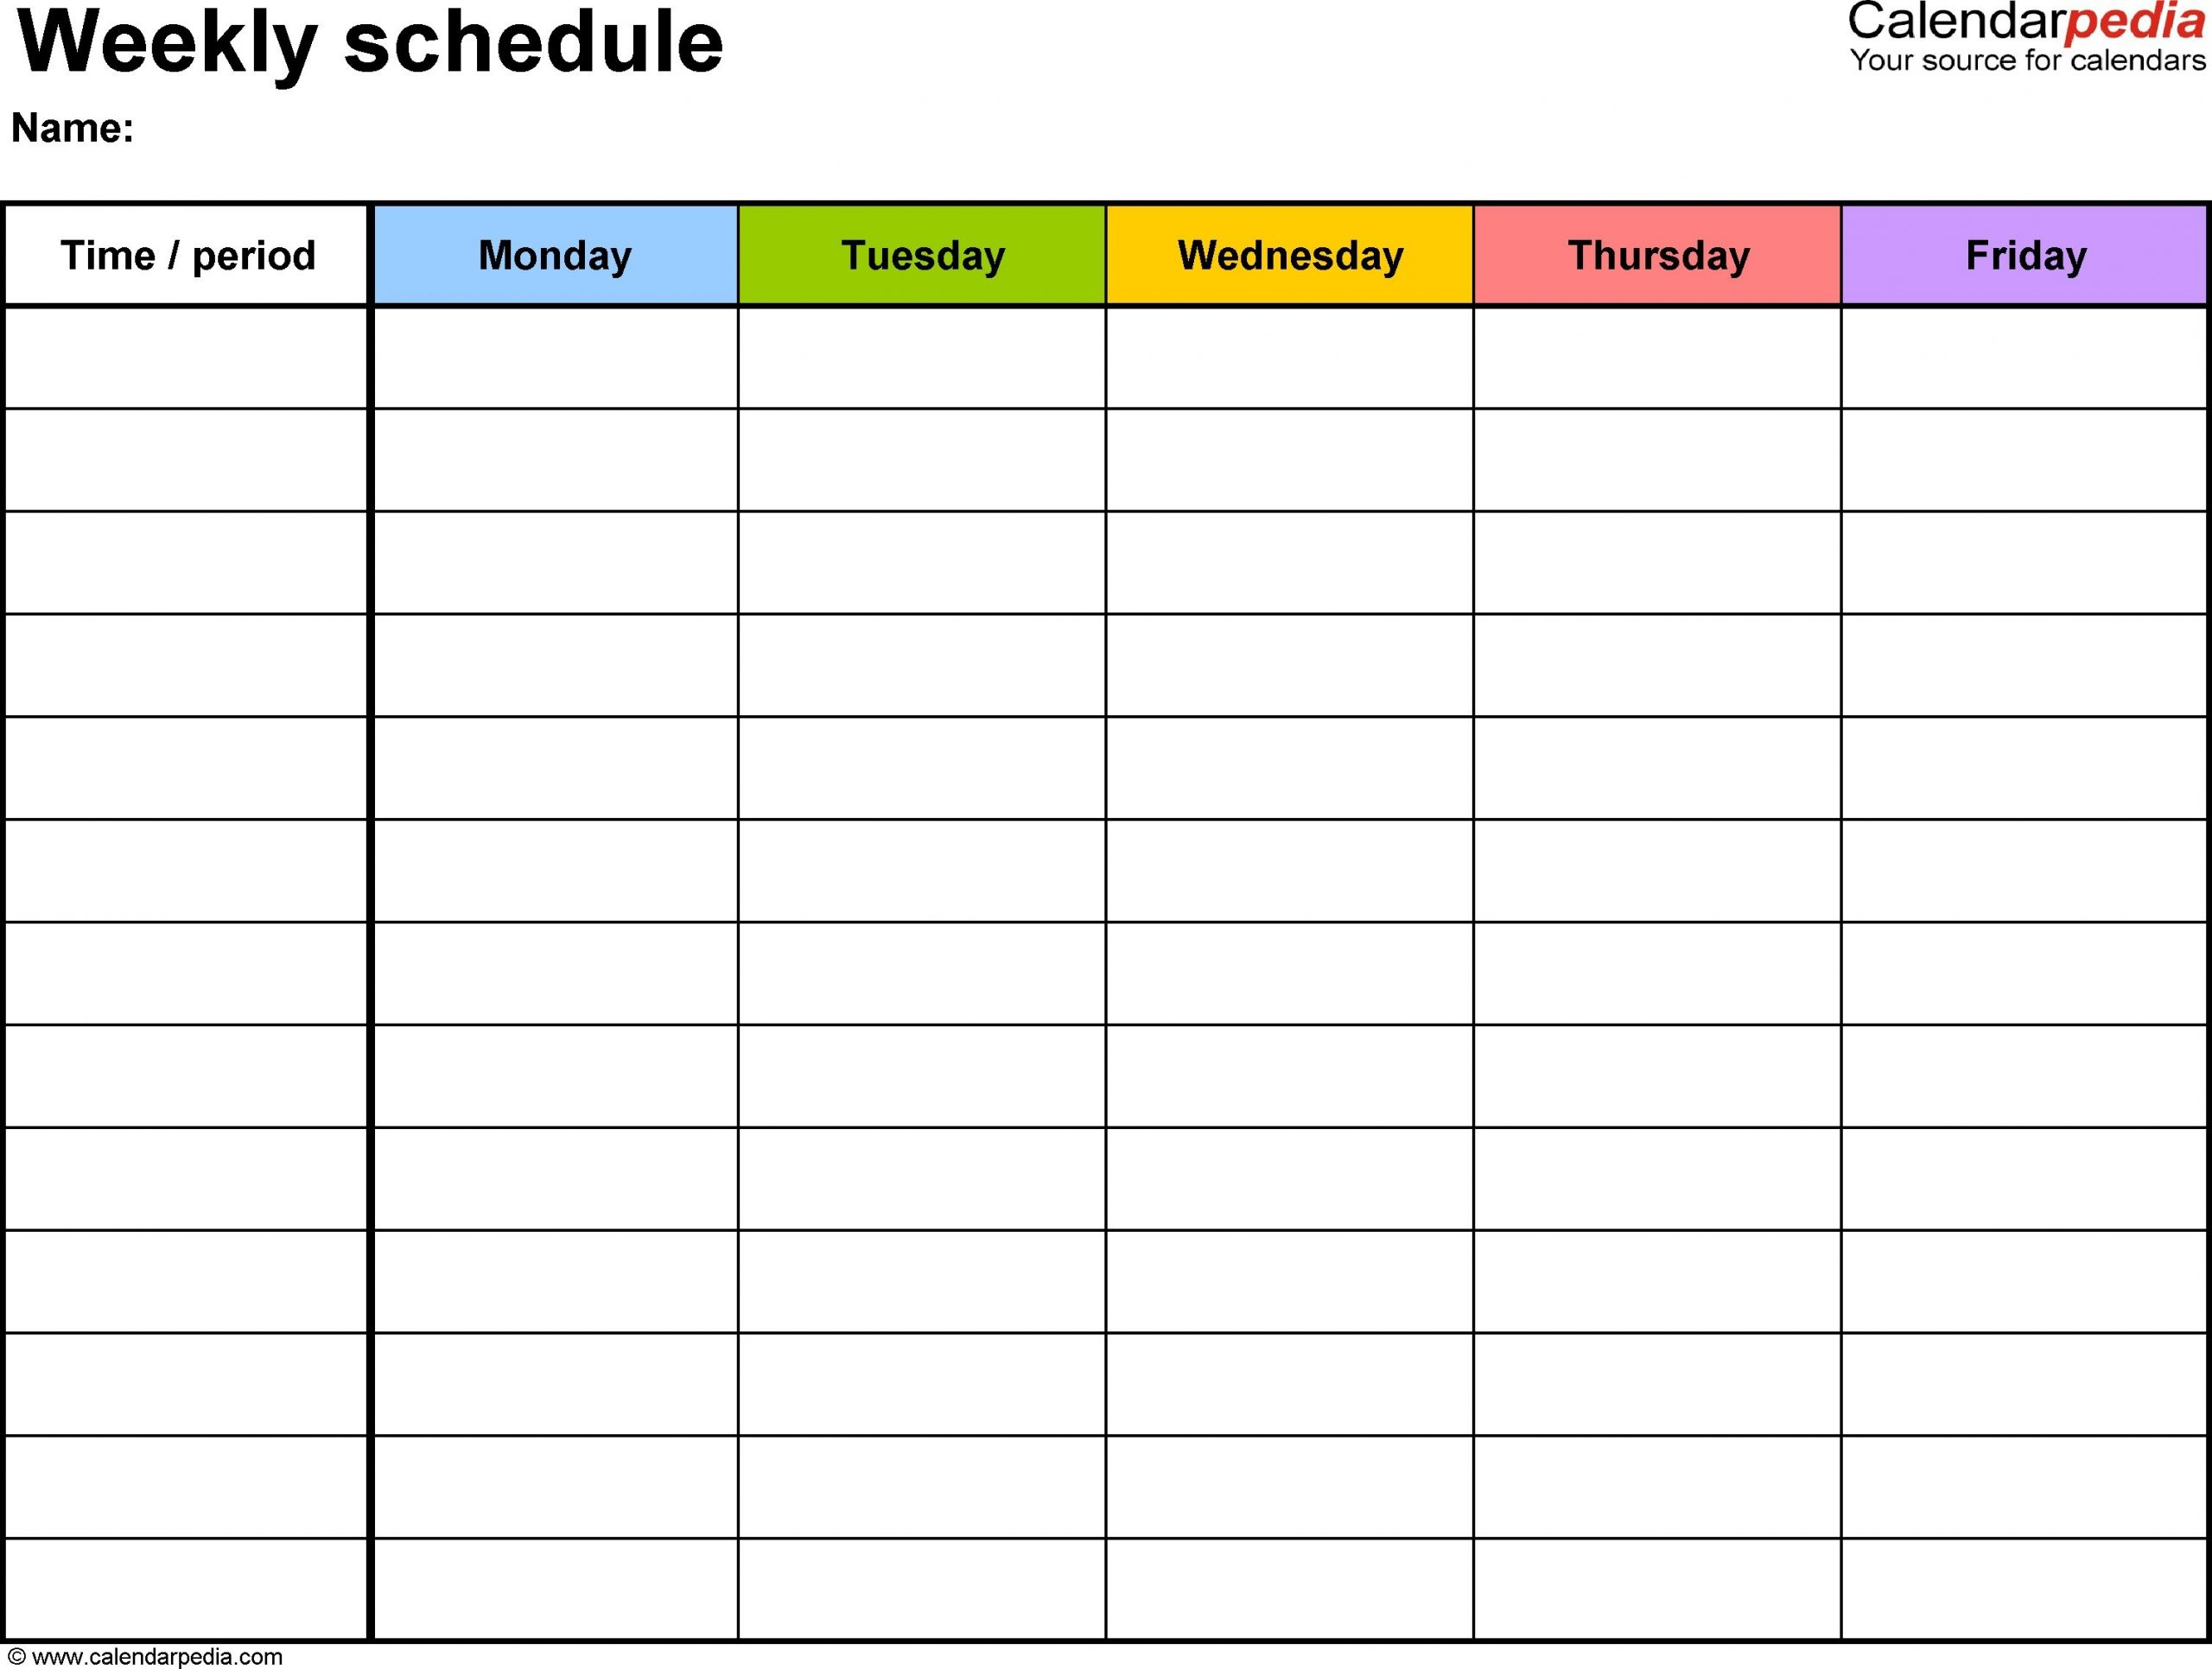 Printable Weekly Schedule Template | Room Surf